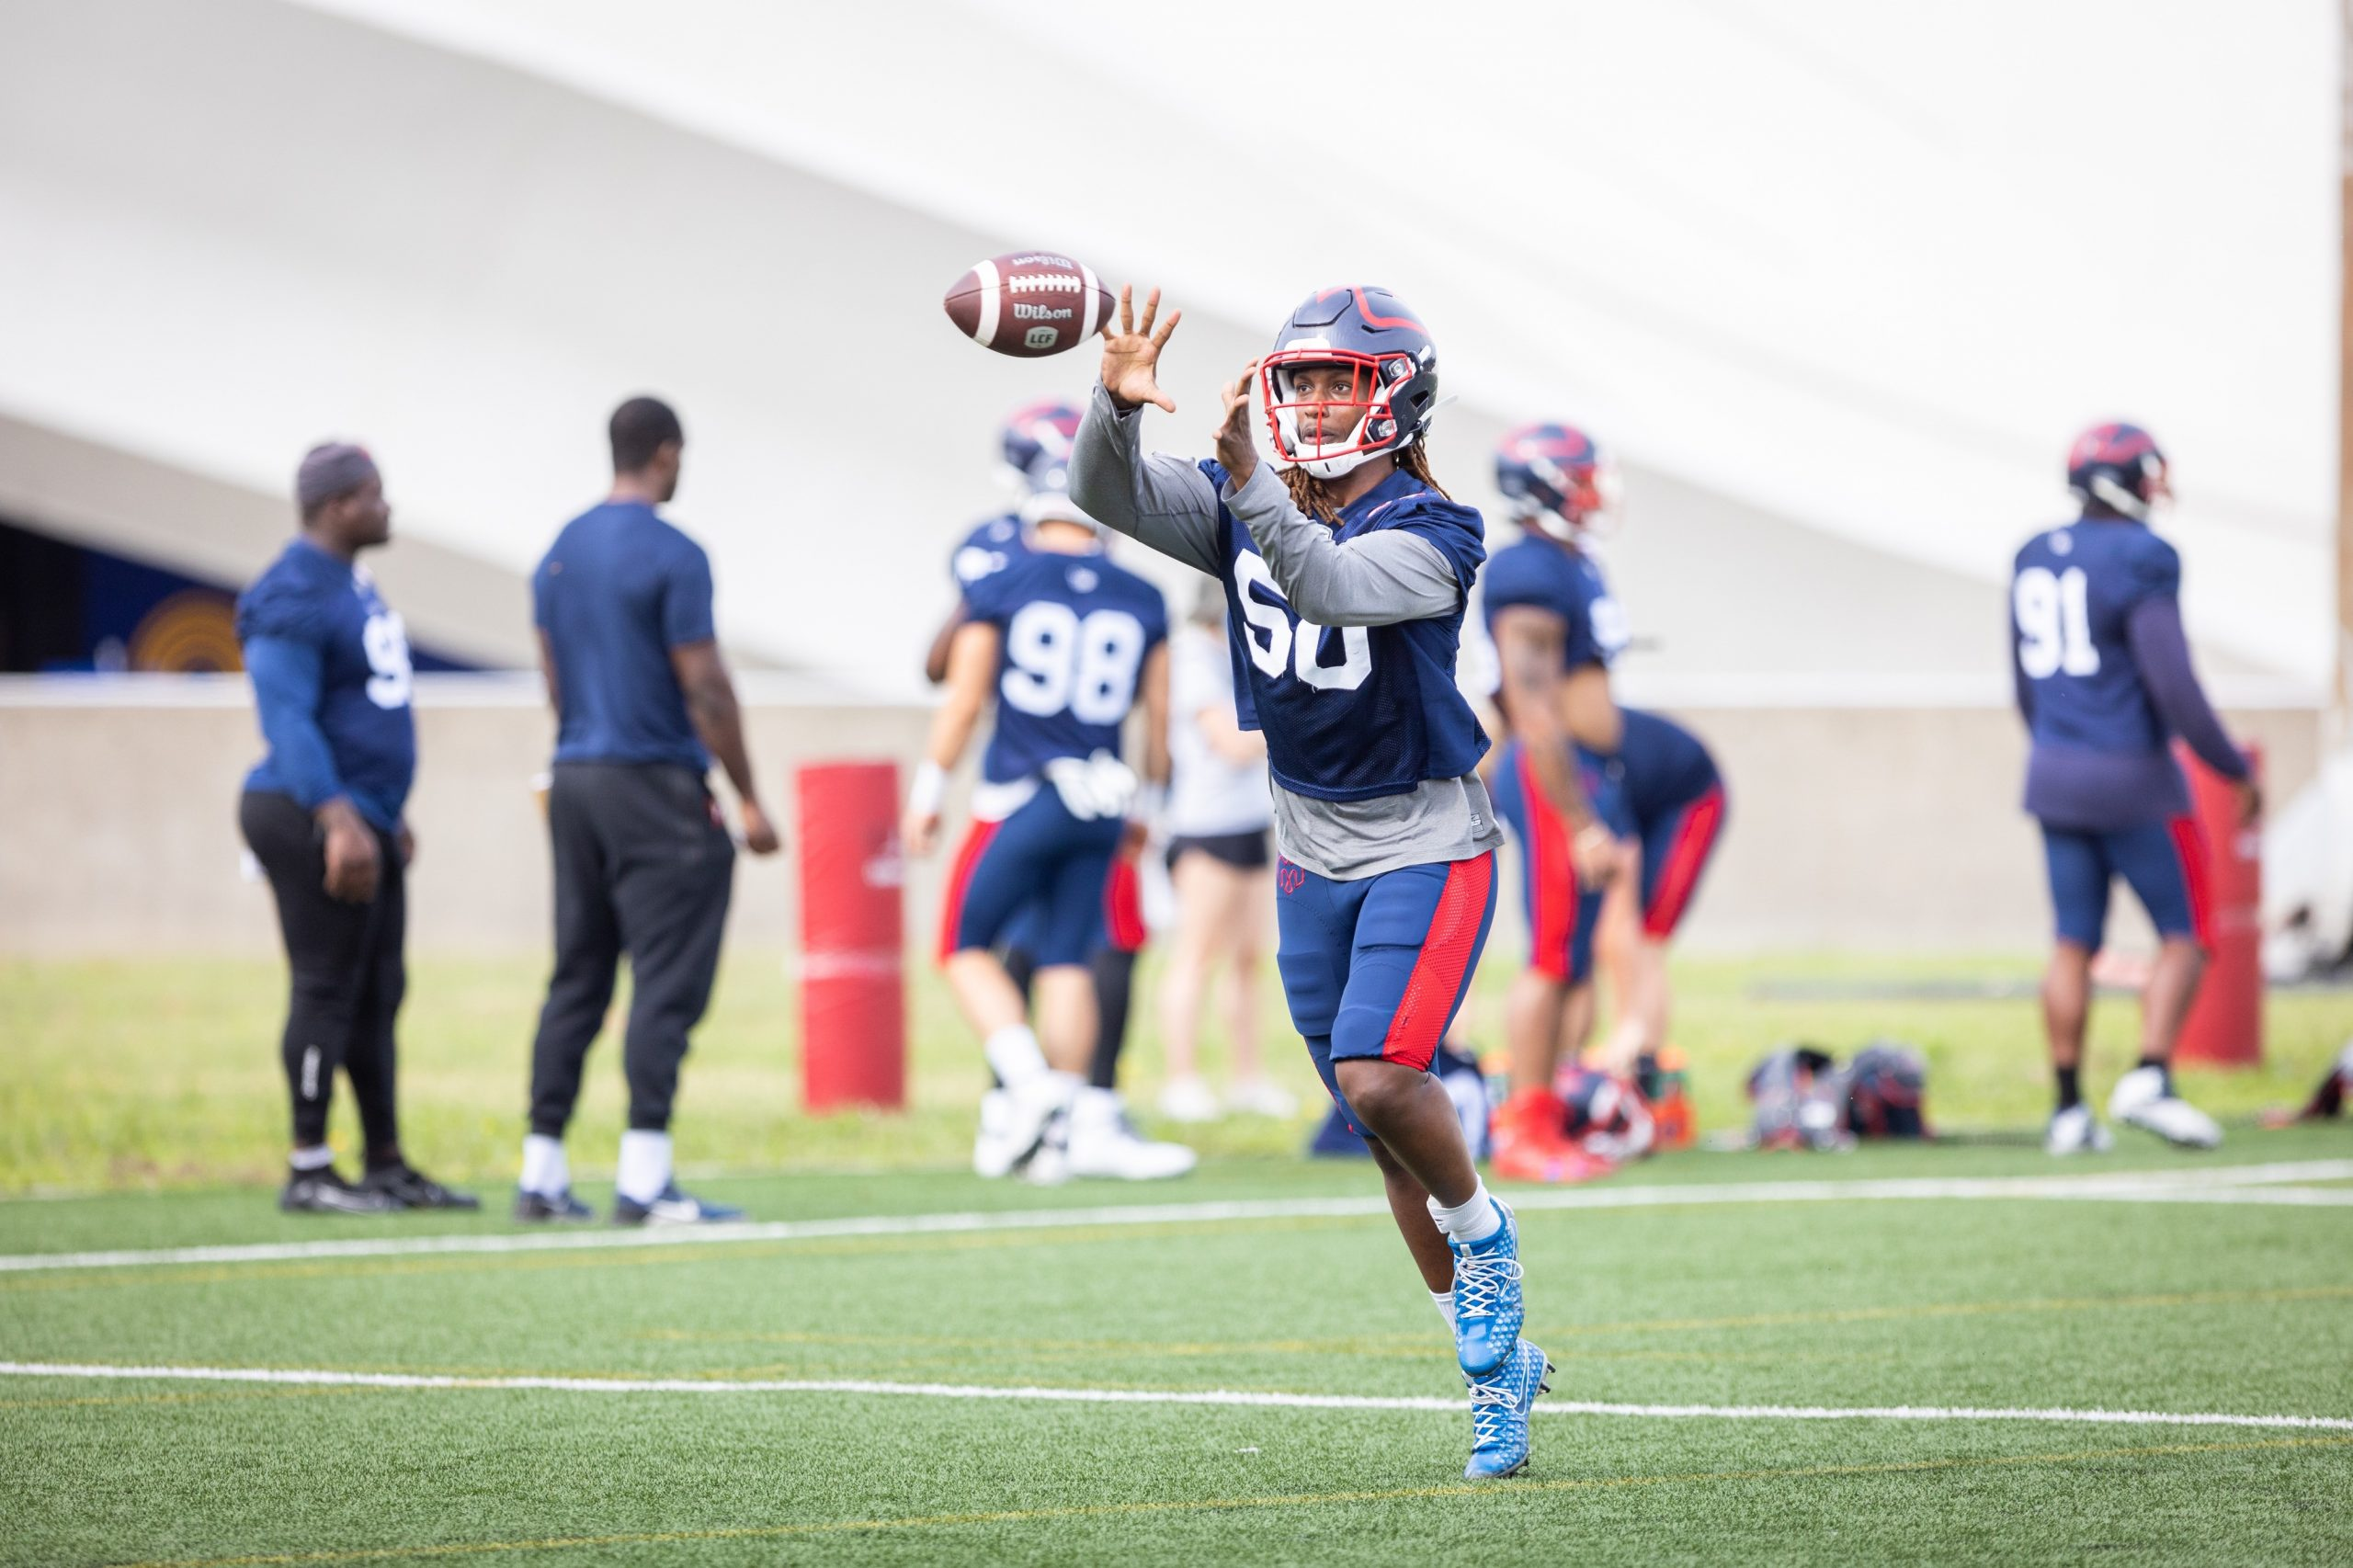 Alouettes linebacker Brian Harelimana learned to love football in Laval